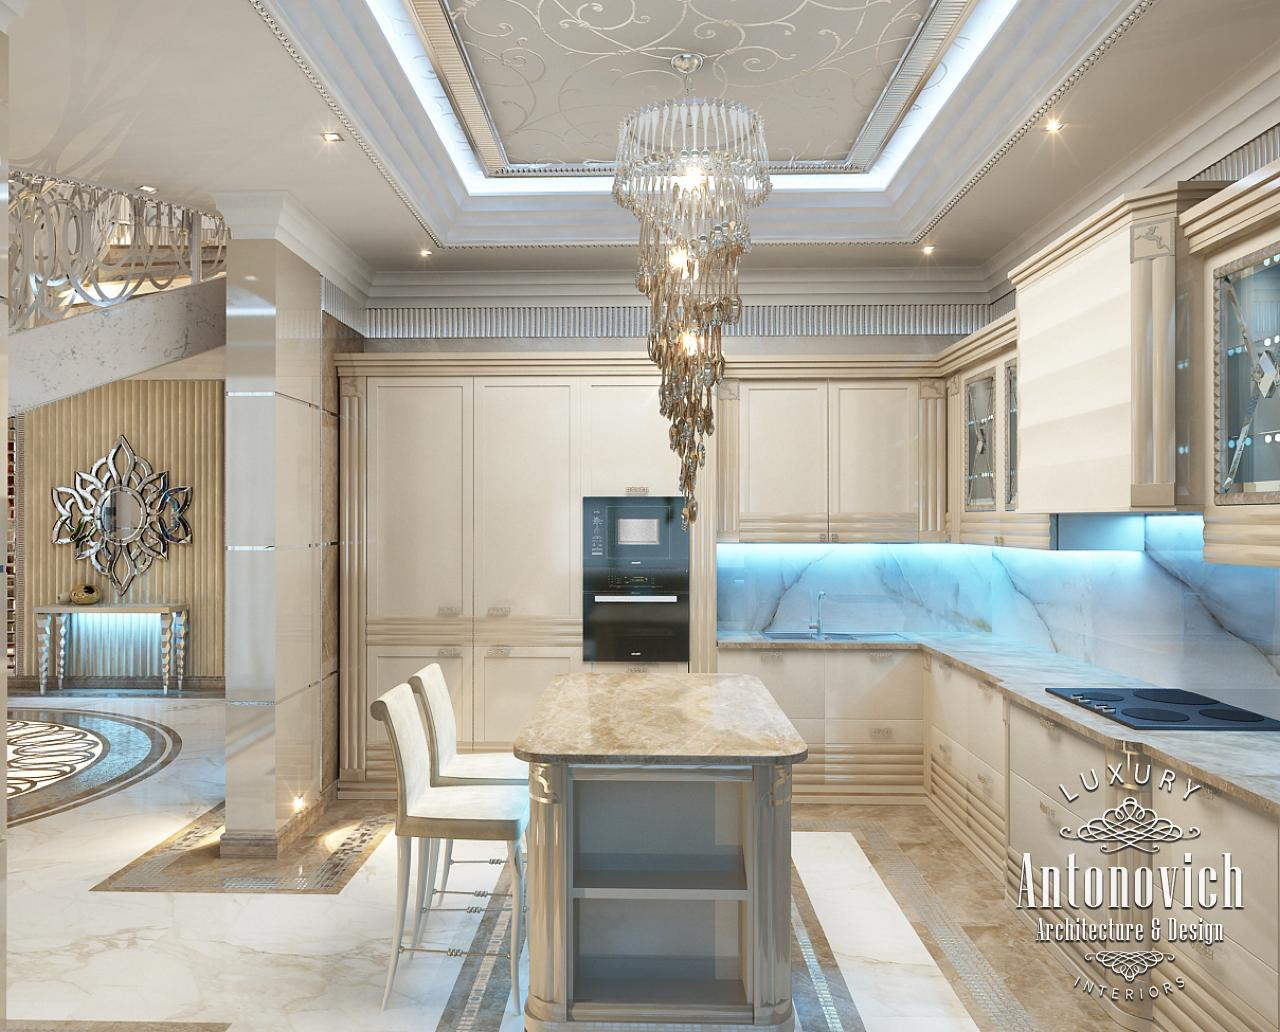 Luxury antonovich design uae luxury interior design dubai - Design interior ...